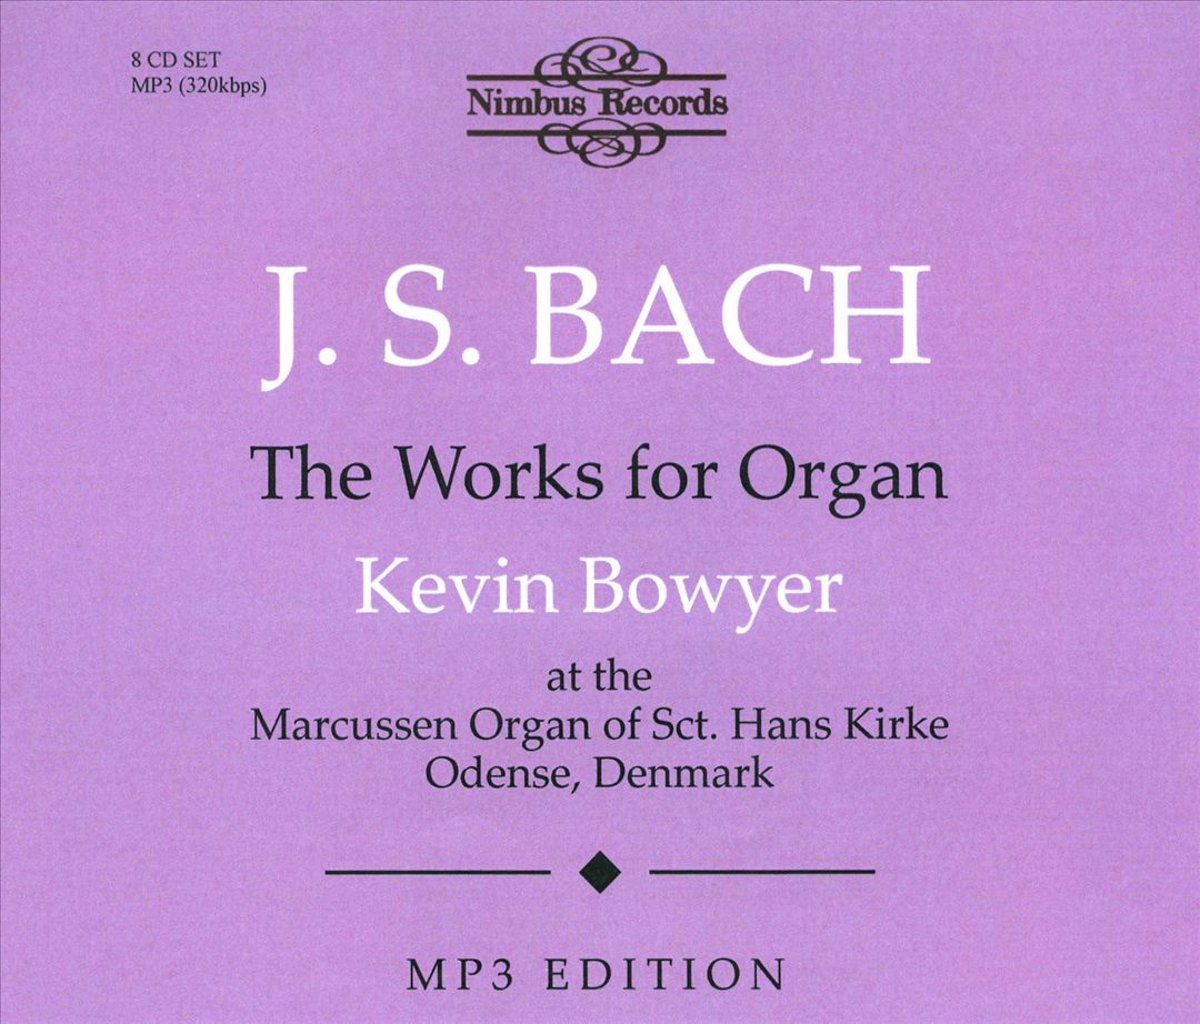 The Works For Organ - Mp3